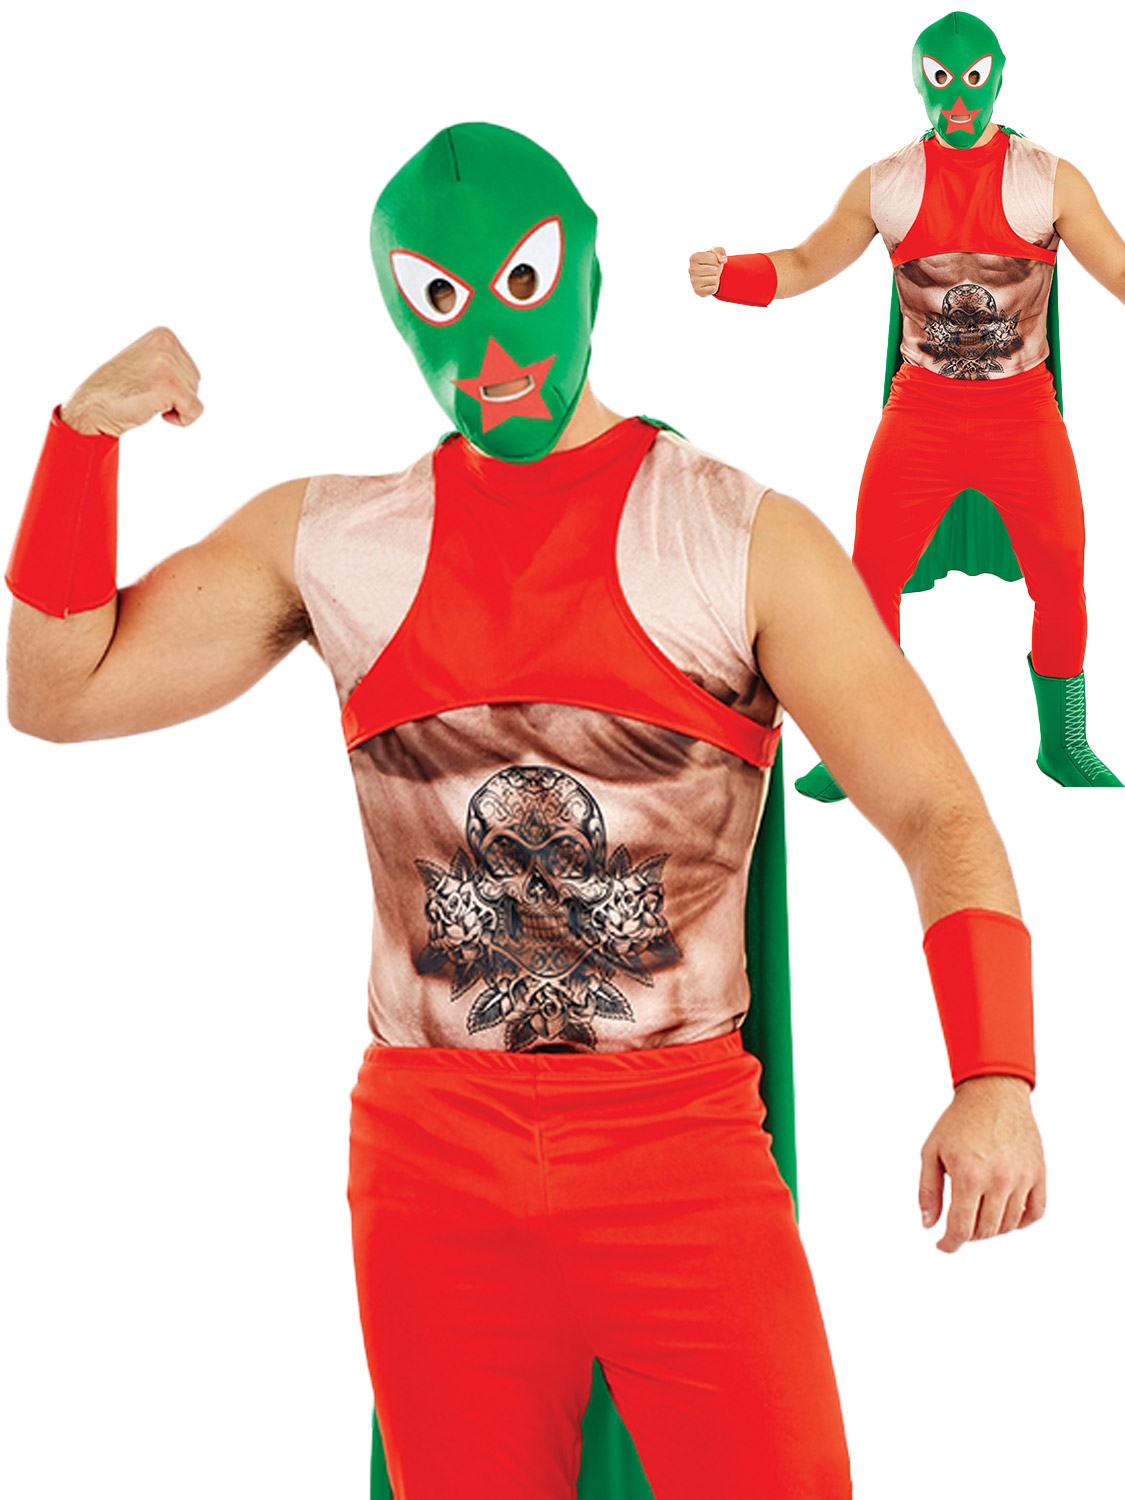 Mens mexican wrestler costume adults sports fighter fancy dress wwe transform yourself into a wrestler with a mexican twist with this mens sports themed costume solutioingenieria